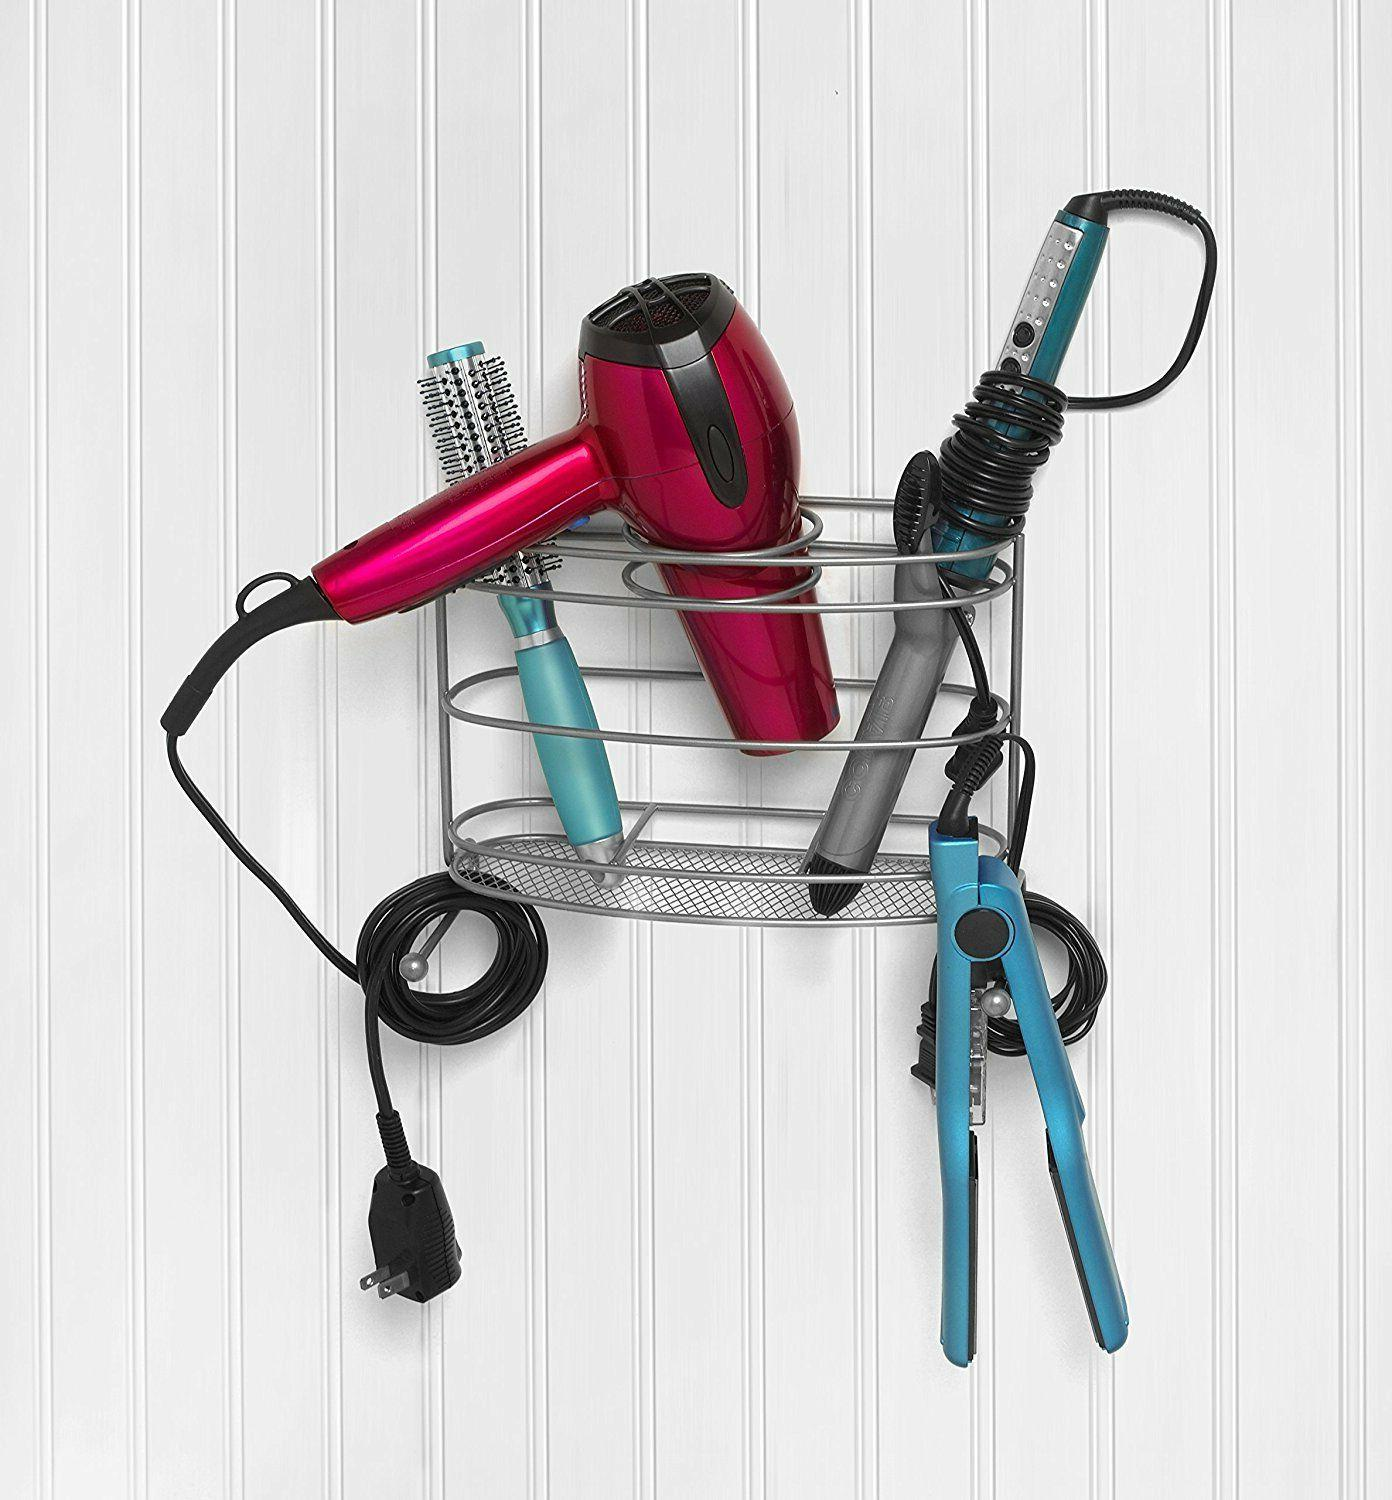 Hair Holder Blow Dryer Curling Iron Tool Stand Organizer Rack